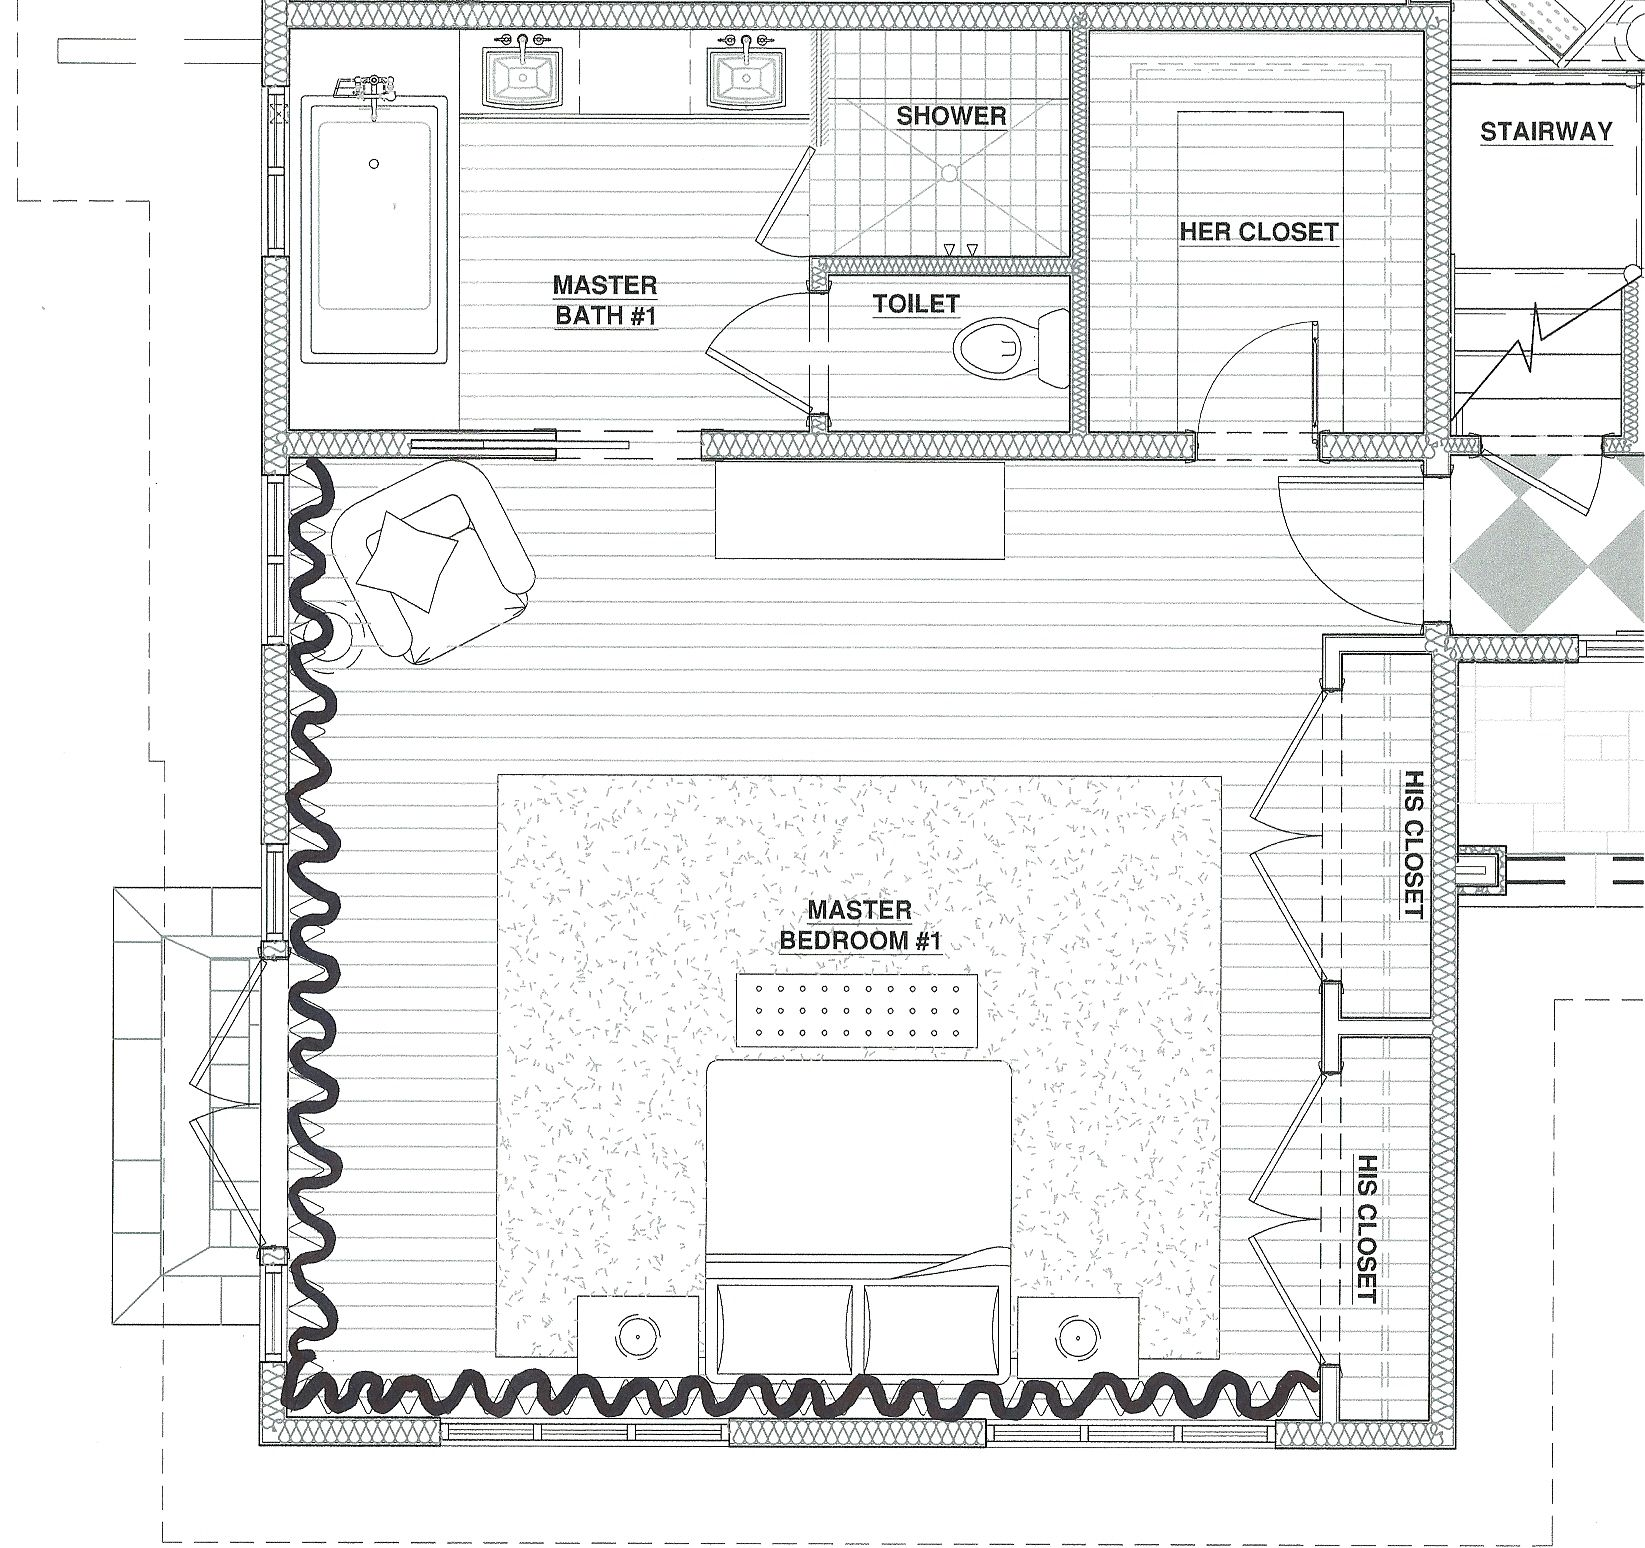 Master bathroom layout - Master Bedroom Floor Plans Picture Gallery Of The Master Bedroom Floor Plan Ideas